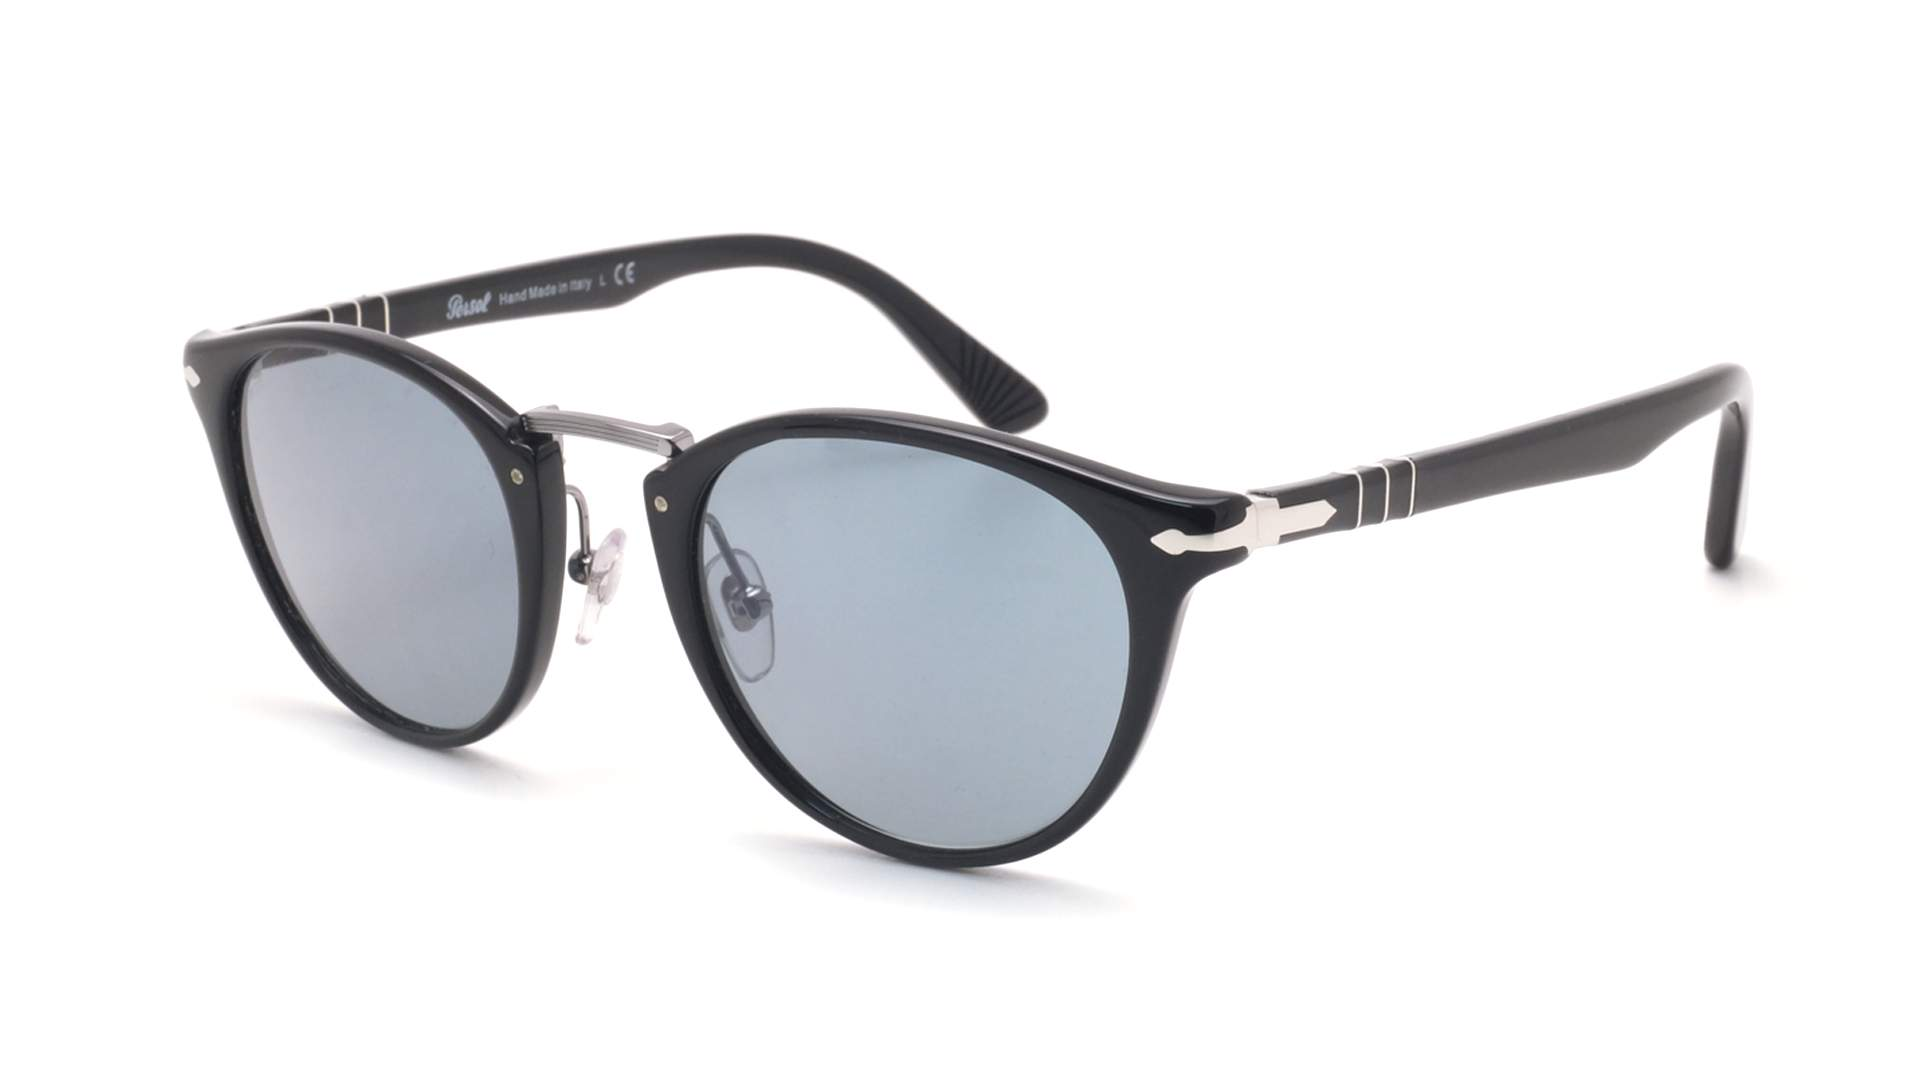 Medium 9556 Edition Persol Noir Po3108s 22 49 Typewriter vm8Nn0POyw